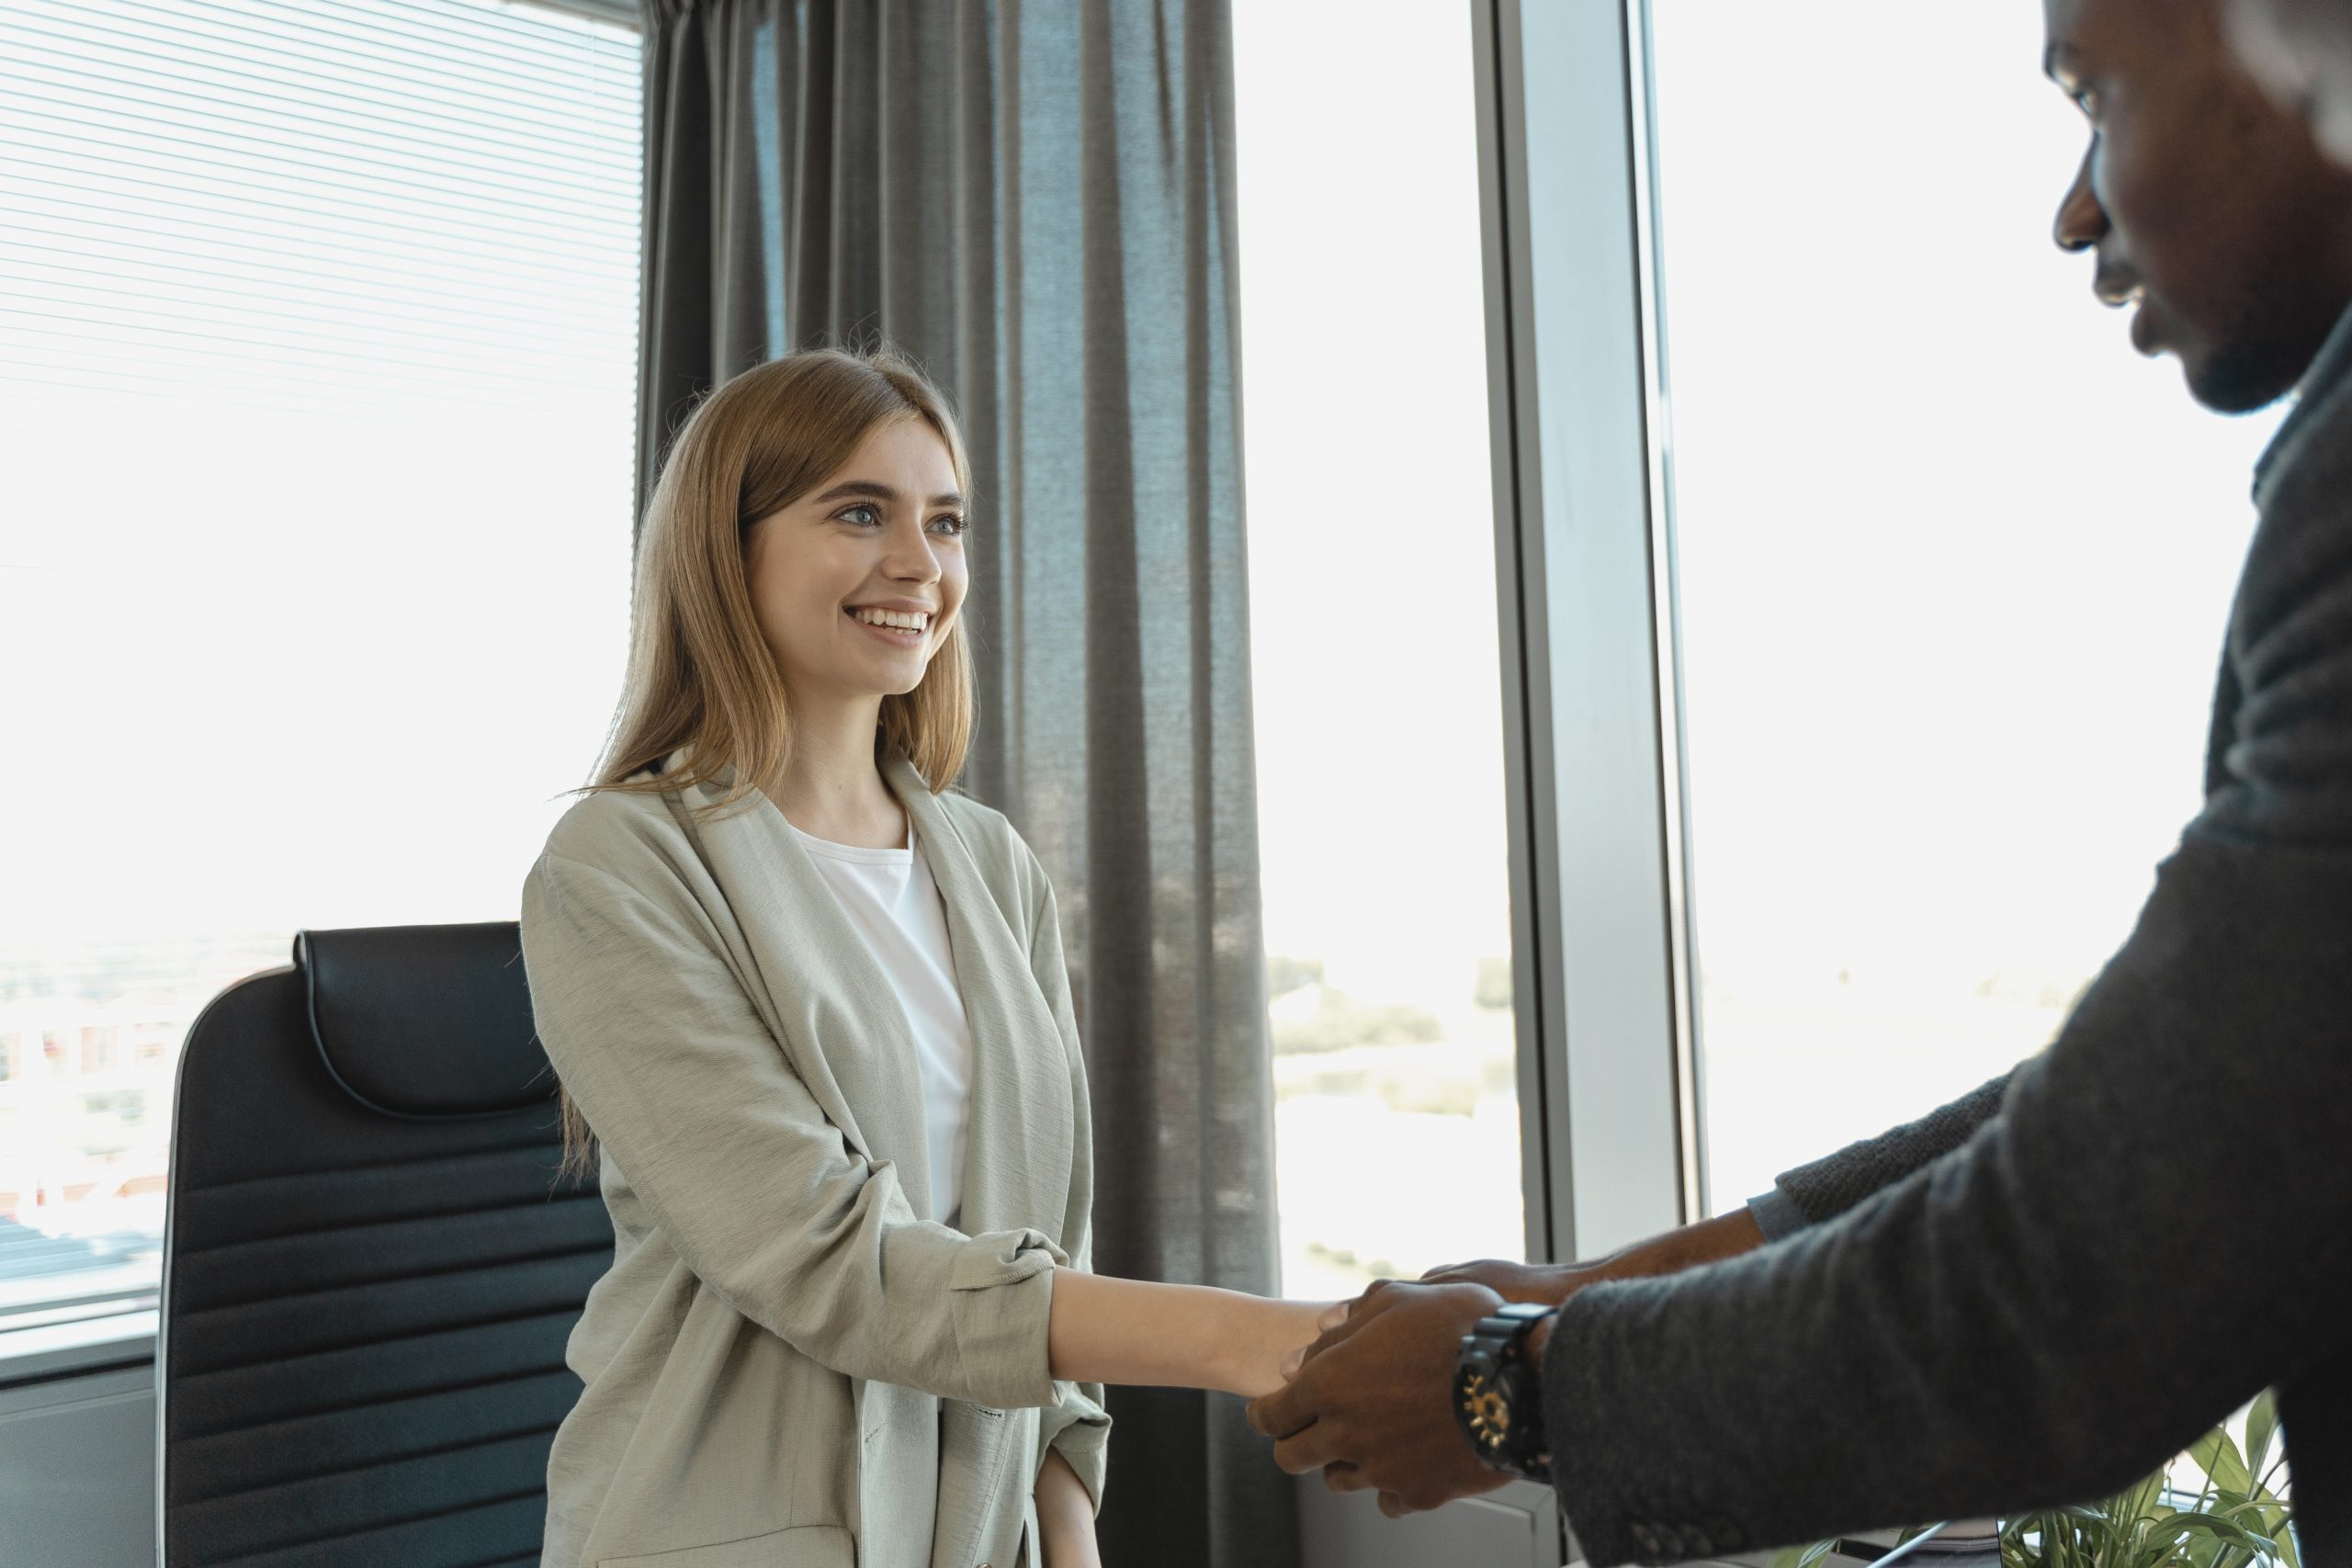 Interview Tips for Managers